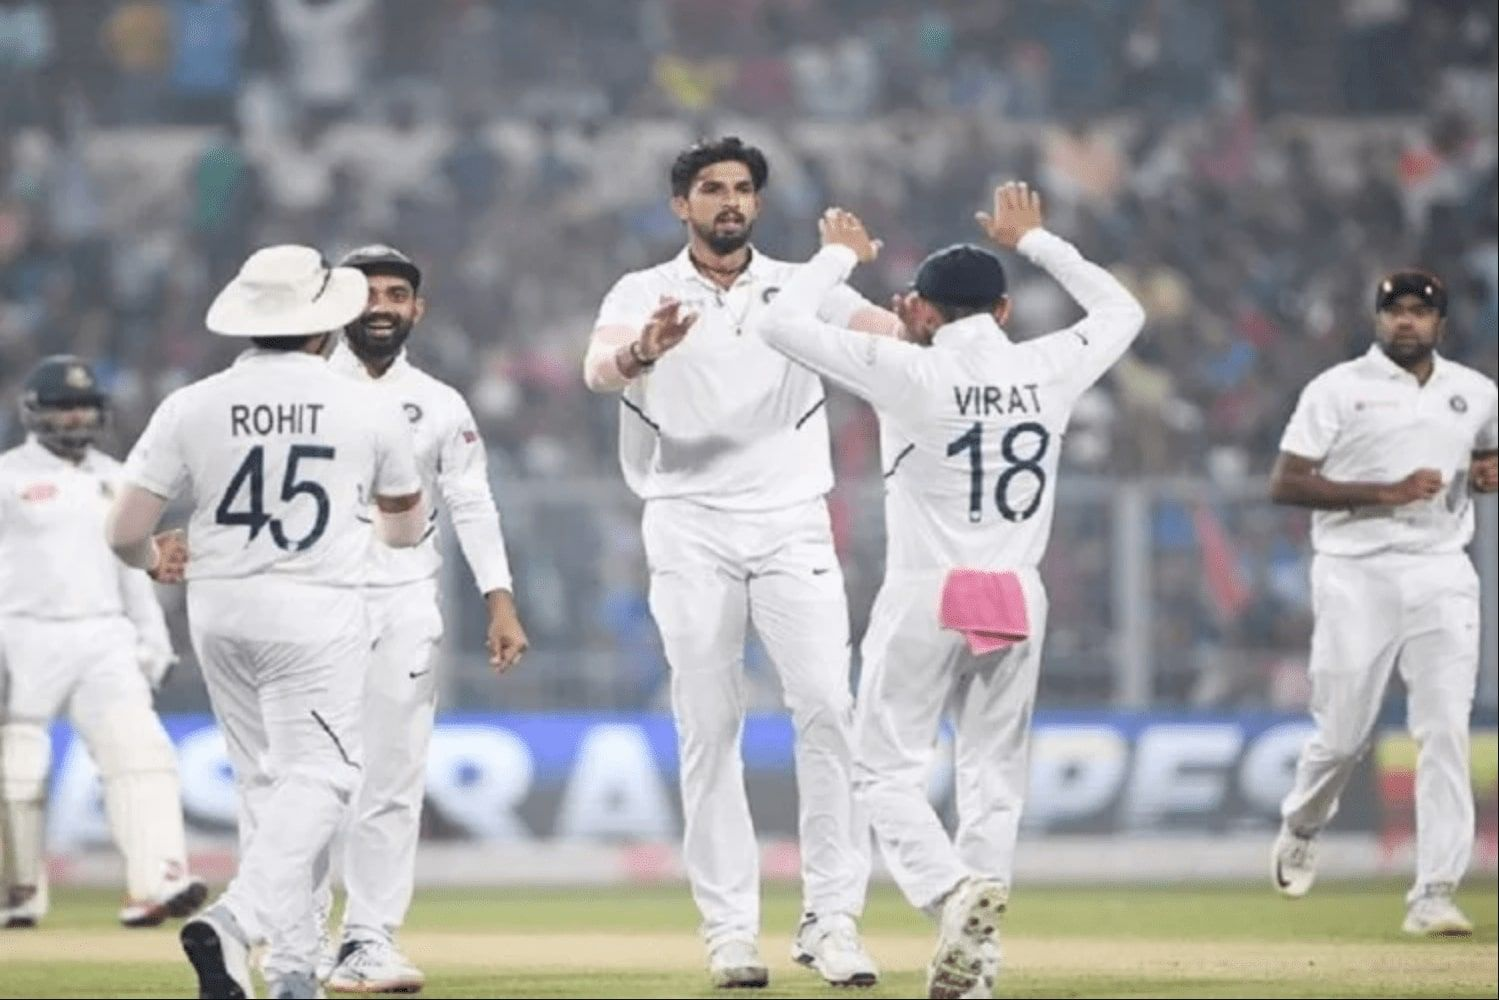 Test matches can be 4 days instead of 5 from 2023